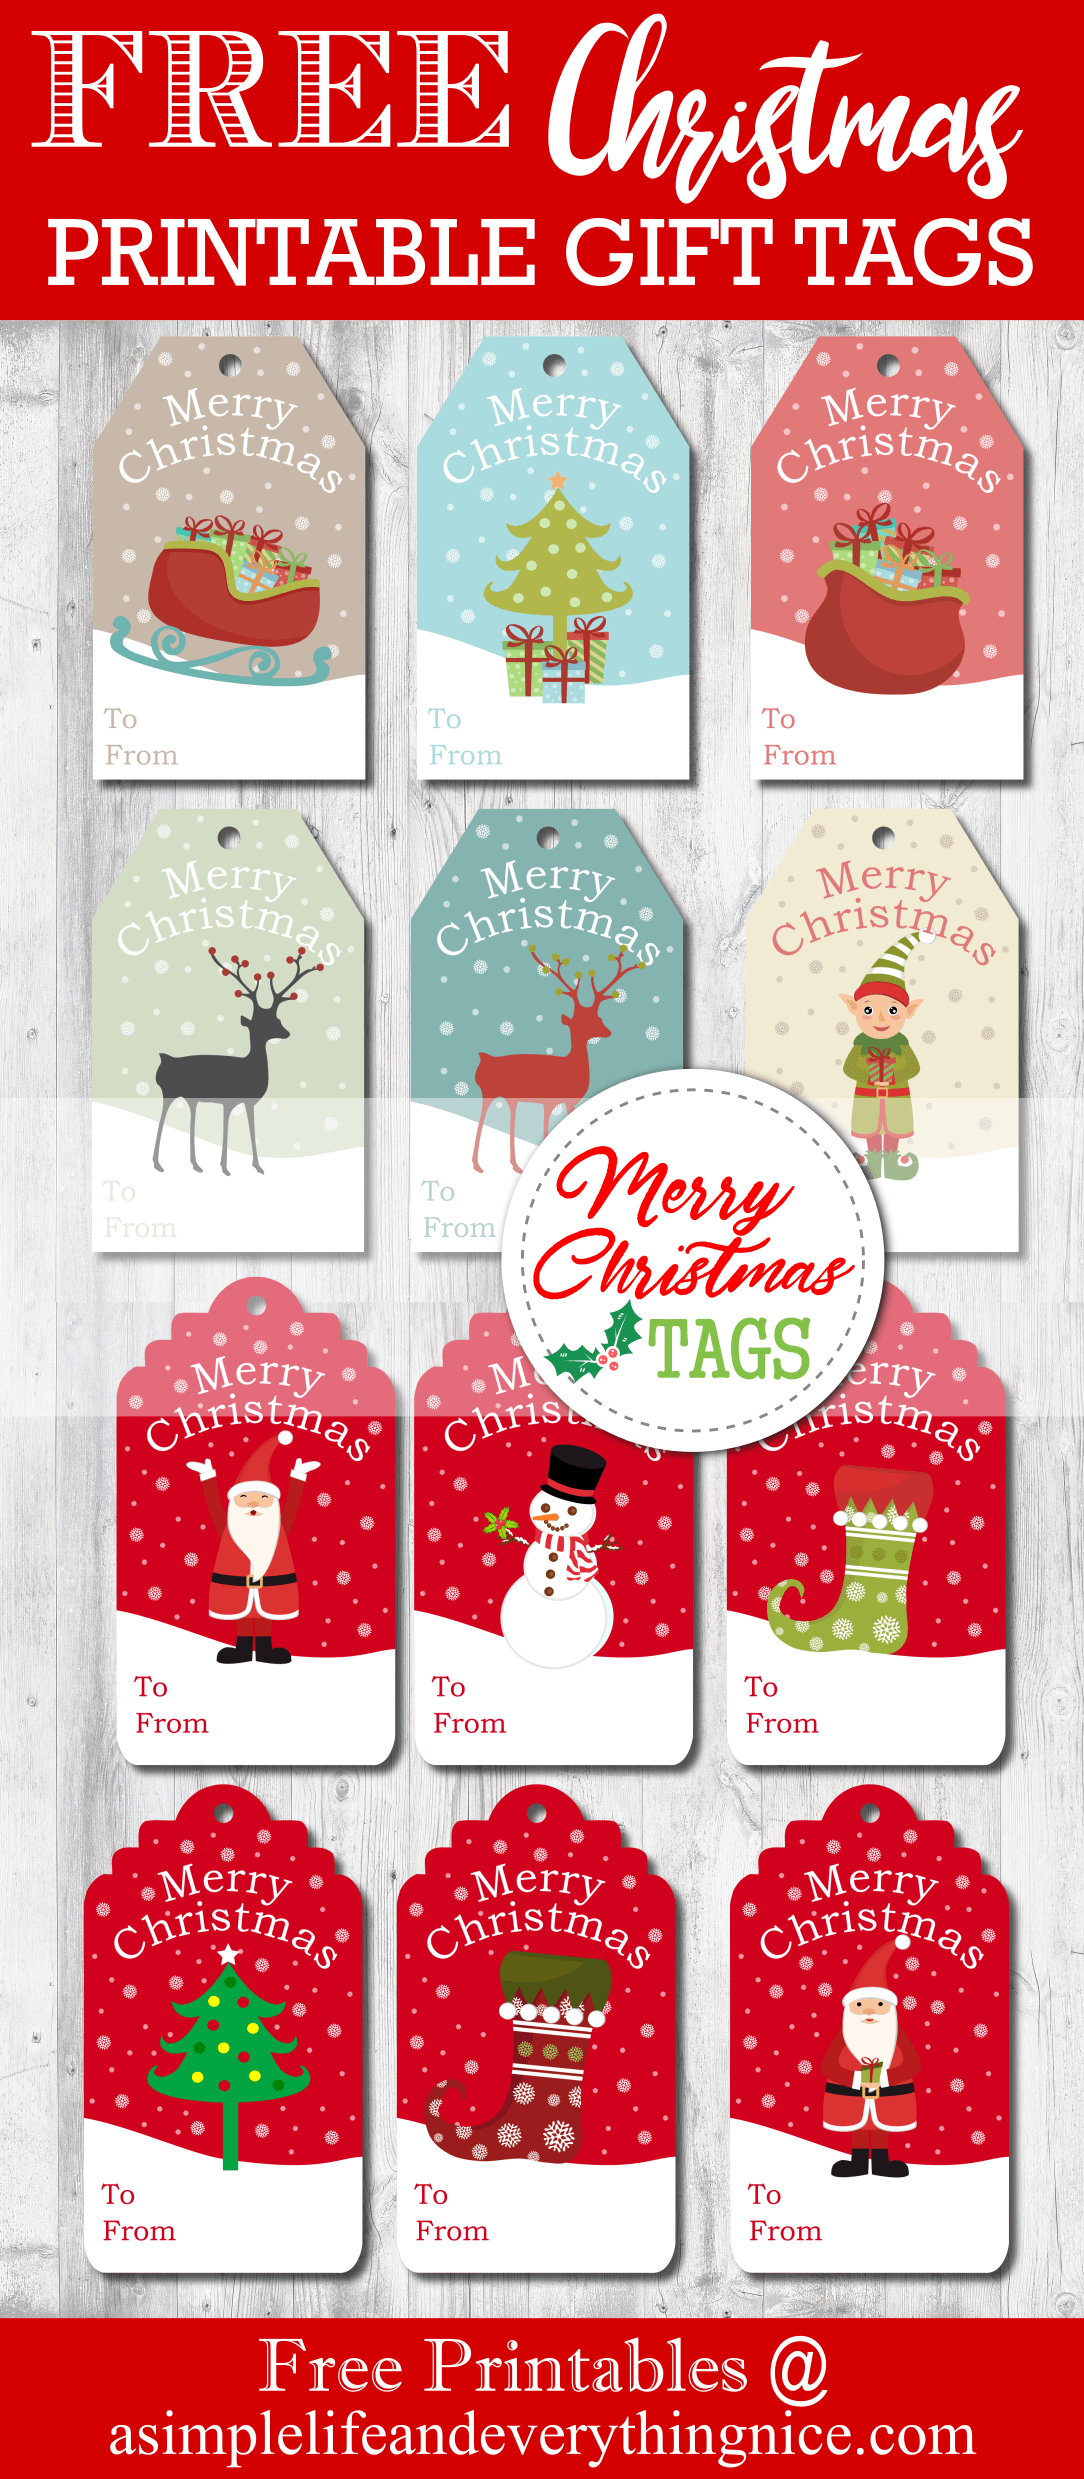 graphic about Free Printable Christmas Name Tags titled Free of charge Printable Xmas Reward Tags - A Uncomplicated Daily life and